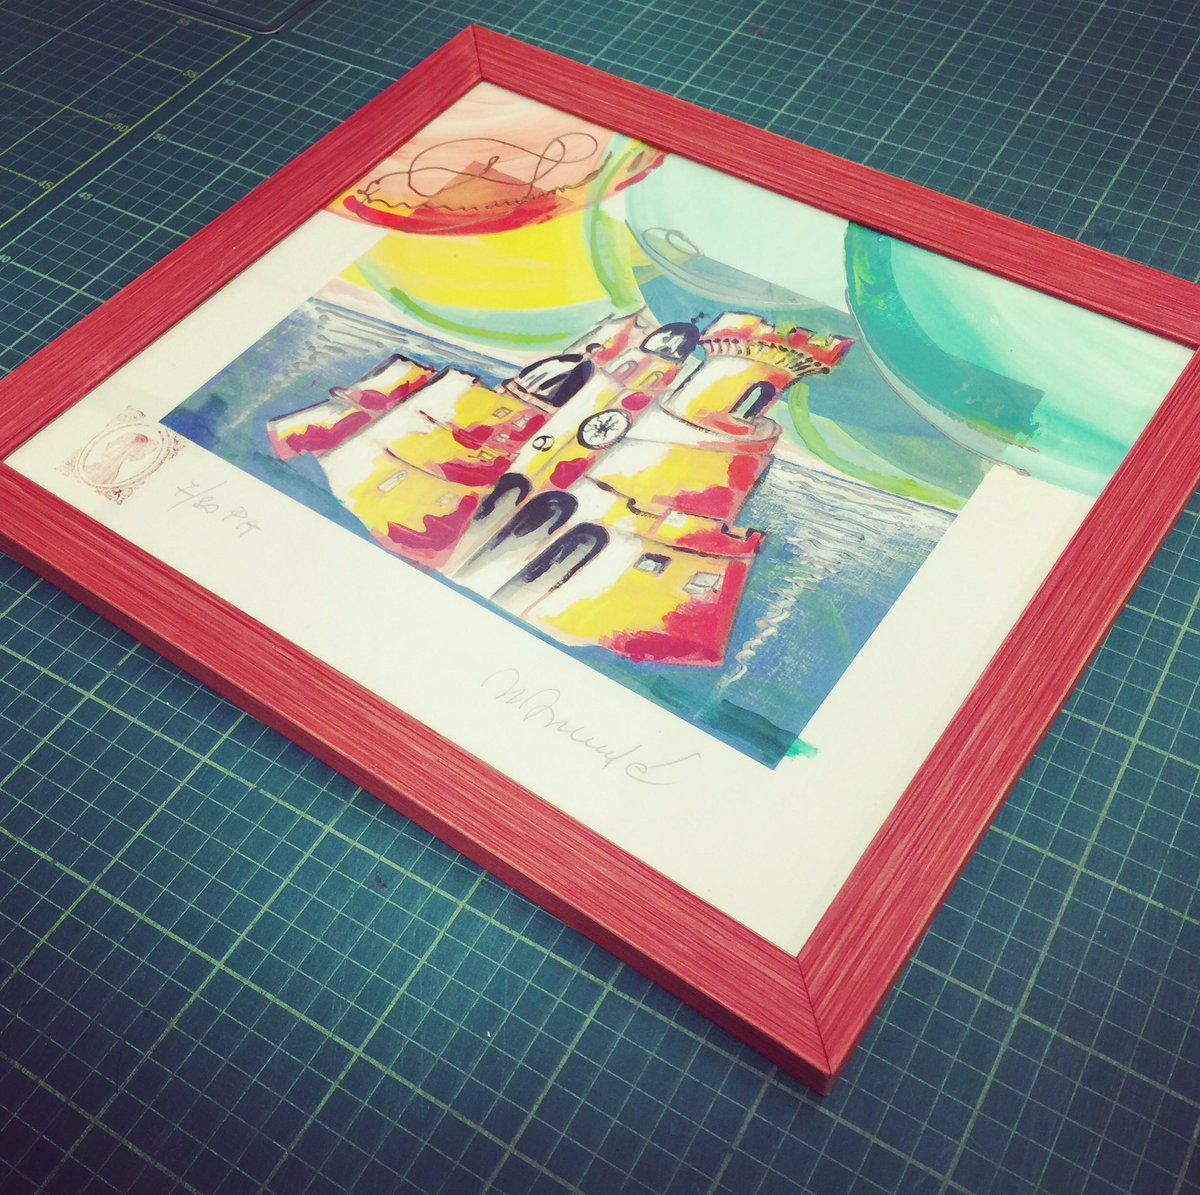 Bespoke hand washed and finished #printandframeit #luton  #framer #framing <br>http://pic.twitter.com/q3FTqACVX2